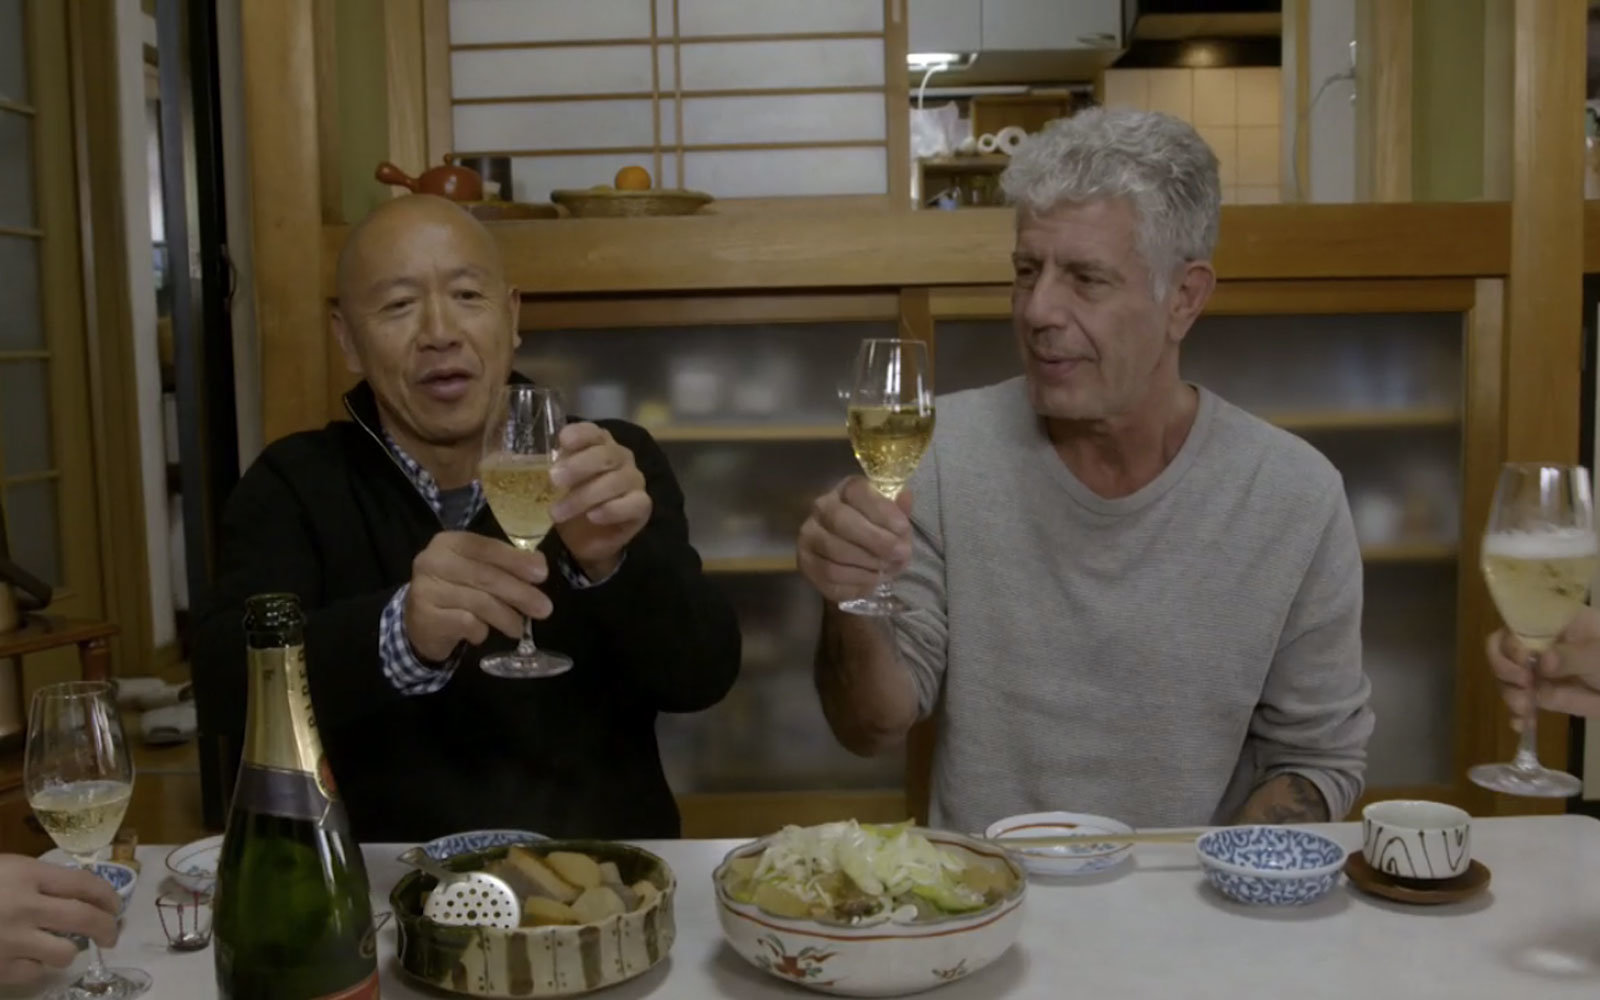 Bourdain heads to Tokyo on Parts Unknown.